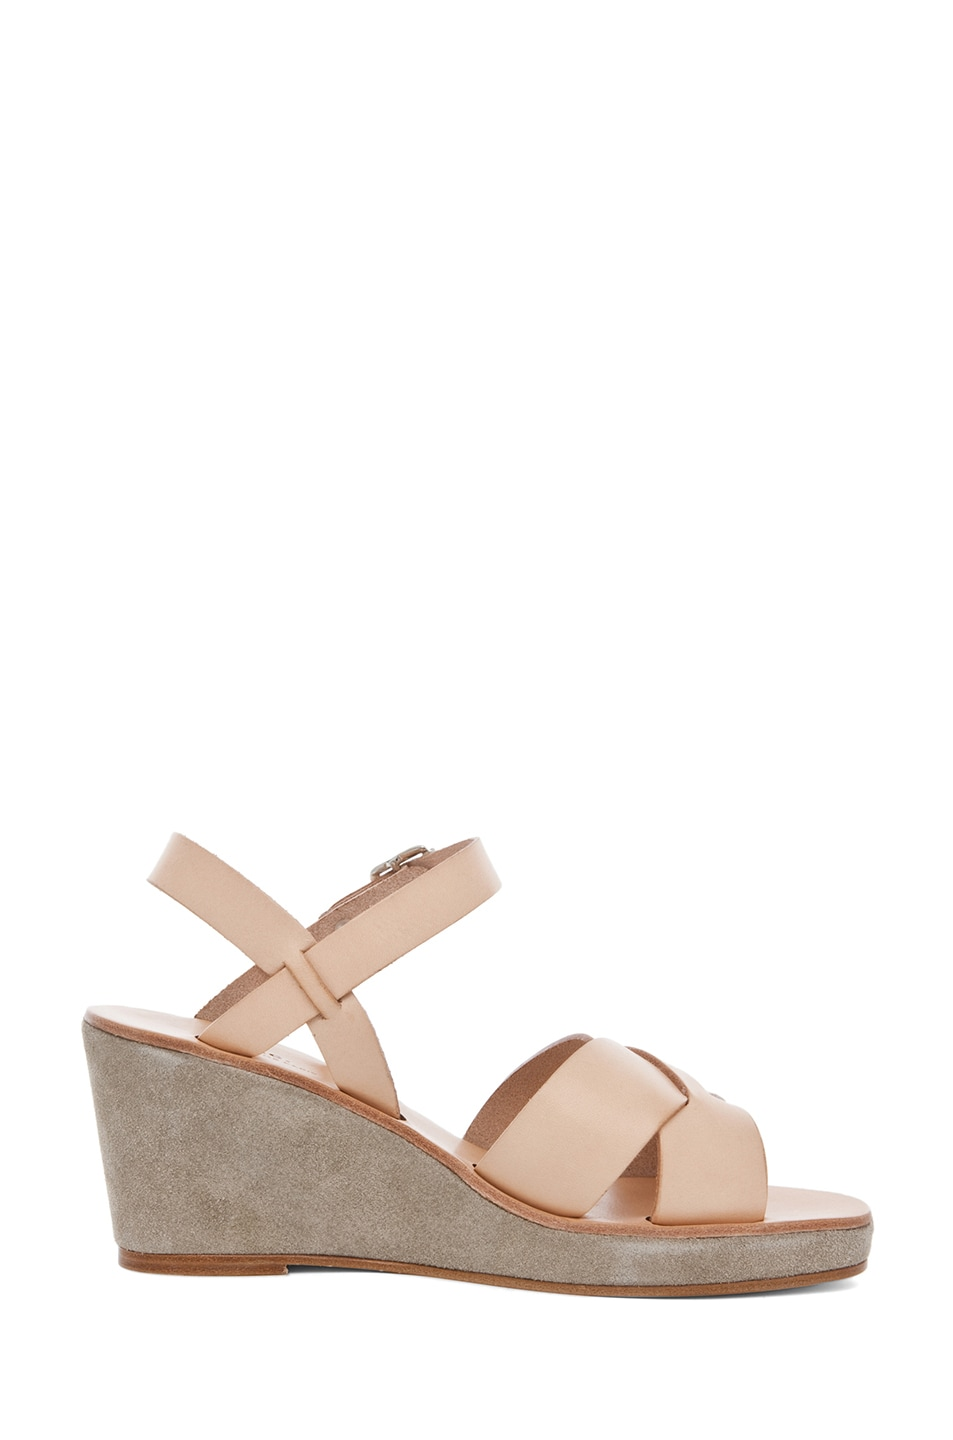 Image 5 of A.P.C. Criss Cros Wedge Sandal in Beige Naturel